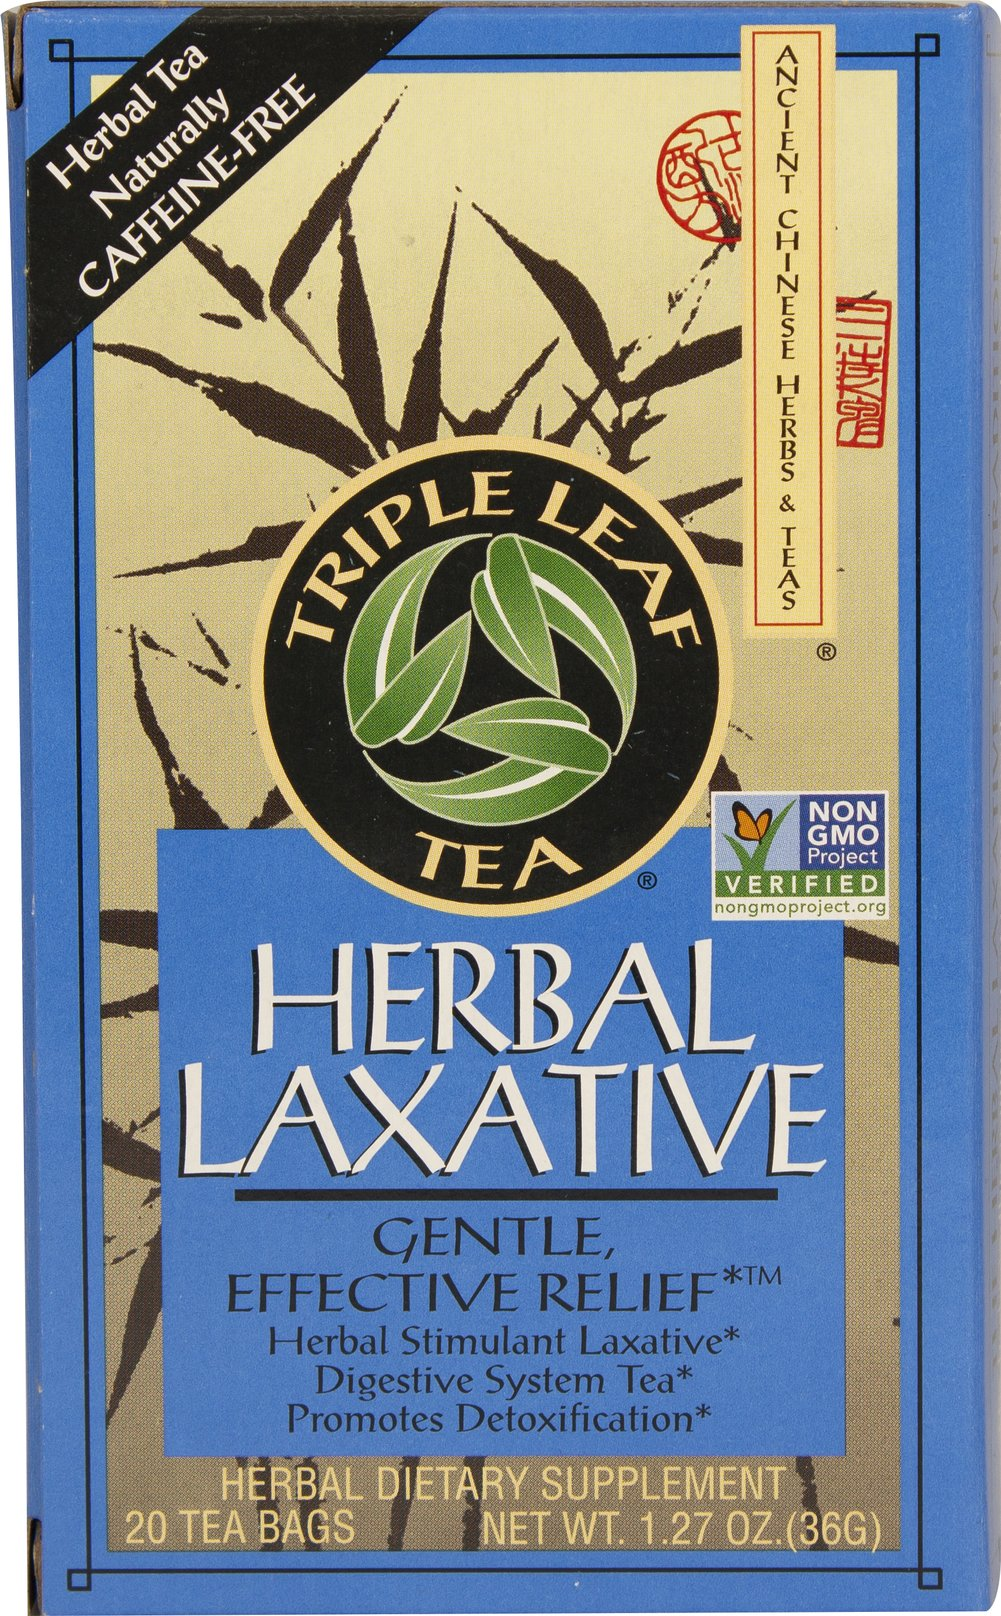 Herbal Laxative <p><b>Herbal Laxative</b> Tablets are an all-natural laxative designed for the relief of occasional constipation.** Our formula brings together the holistic properties of Cascara Sagrada and Senna, two popular herbals that help promote regularity.**</p><p>Herbal Laxative Tablets contain no harsh synthetics, to assure gentle, yet efficient, relief.**</p> <p>Also available in Capsules. See items 2180, 2183 and 2185.</p> 500 Tablets  $